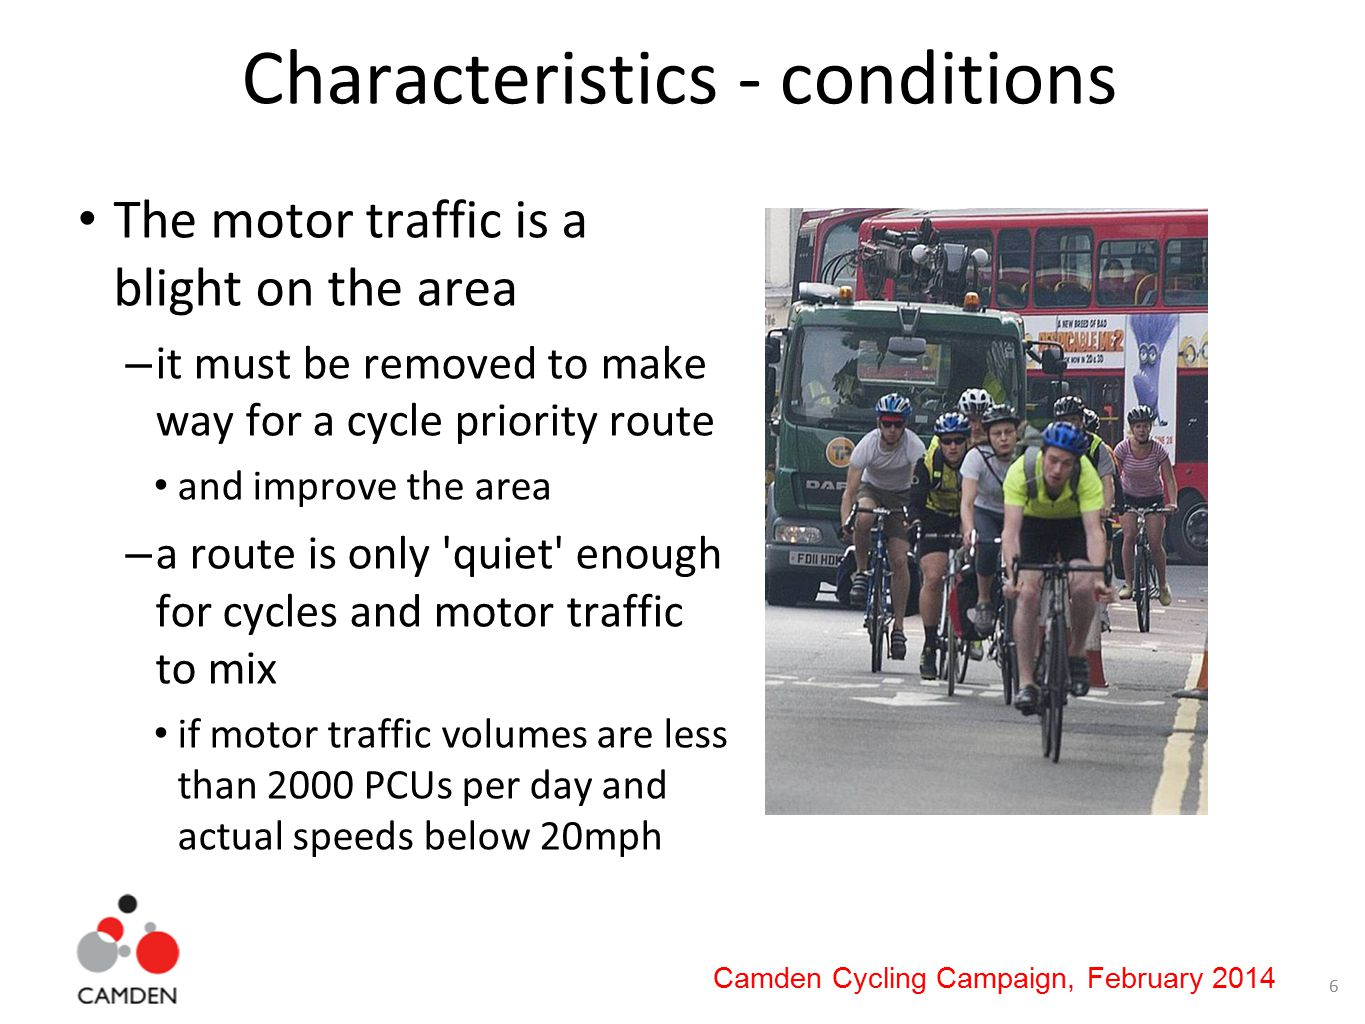 6 Camden Cycling Campaign, February 2014 Characteristics - conditions The motor traffic is a blight on the area – it must be removed to make way for a cycle priority route and improve the area – a route is only quiet enough for cycles and motor traffic to mix if motor traffic volumes are less than 2000 PCUs per day and actual speeds below 20mph